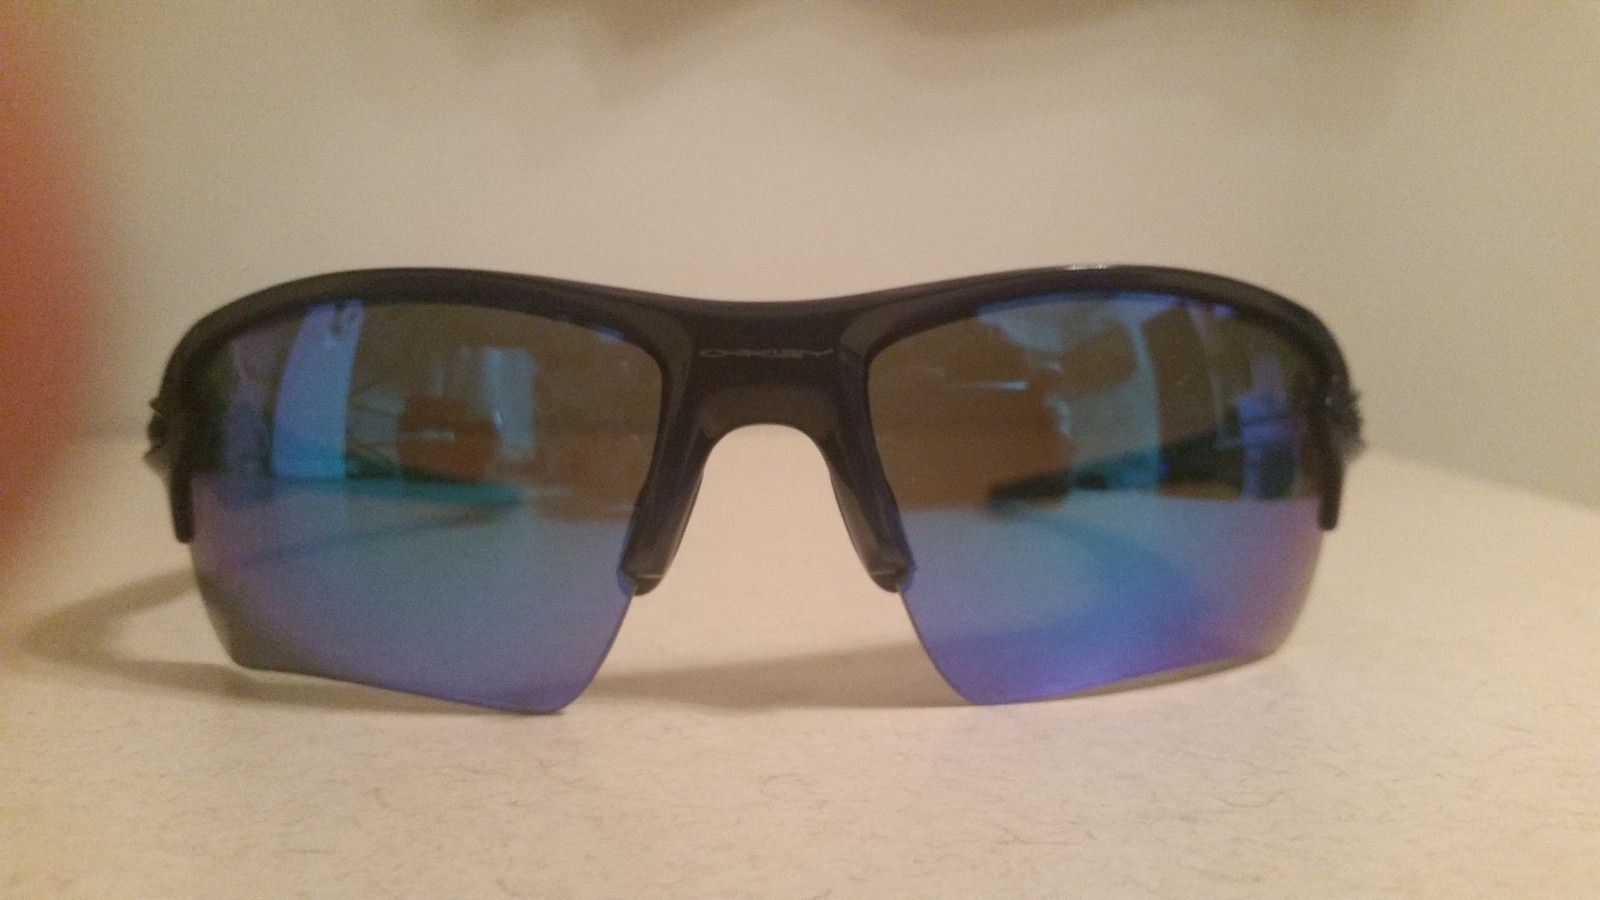 New pair of Flak 2.0 - 20150701_201237.jpg